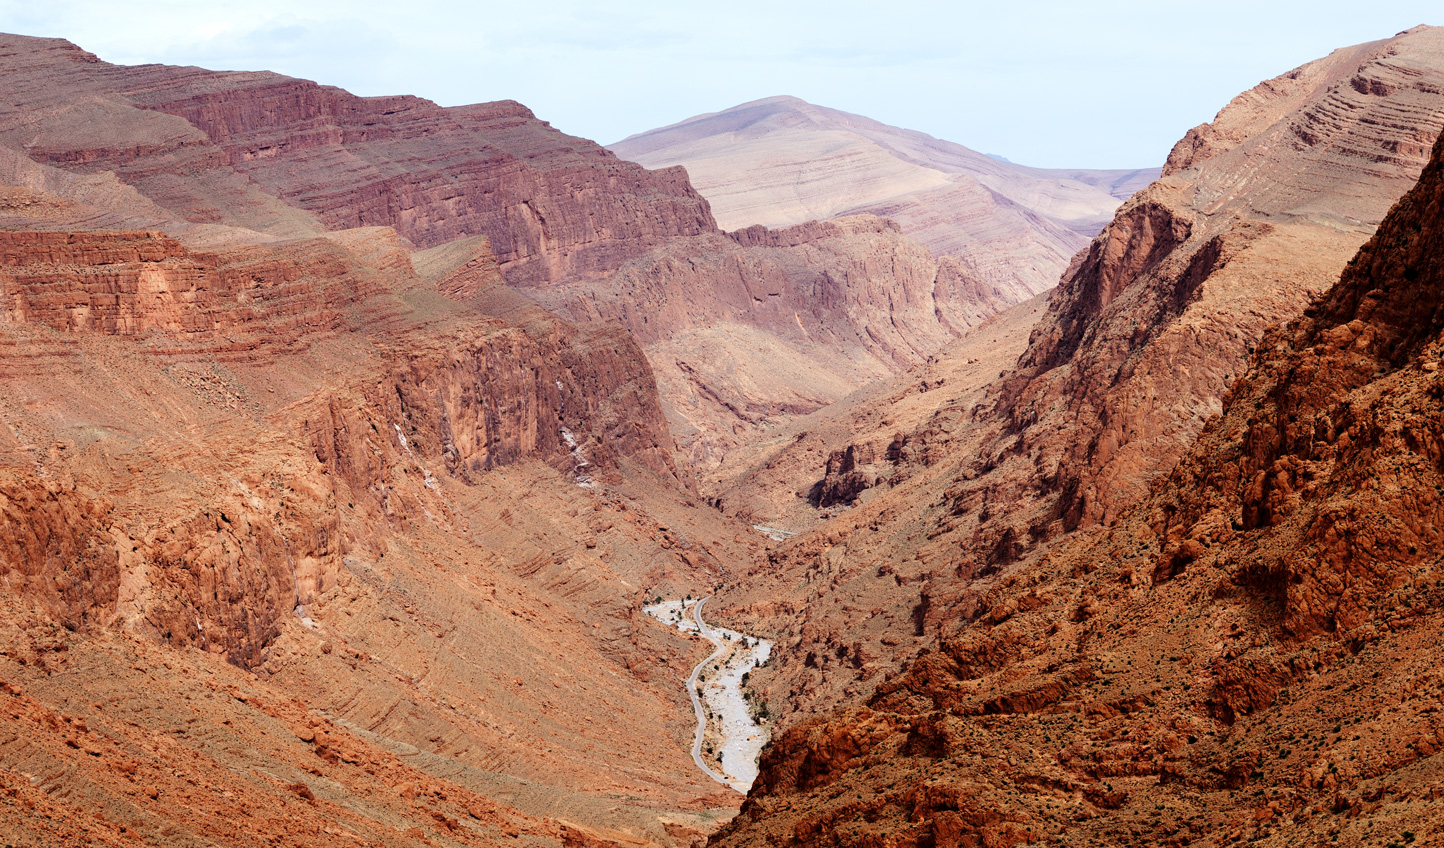 Marvel at the scenery of the Todra Gorge